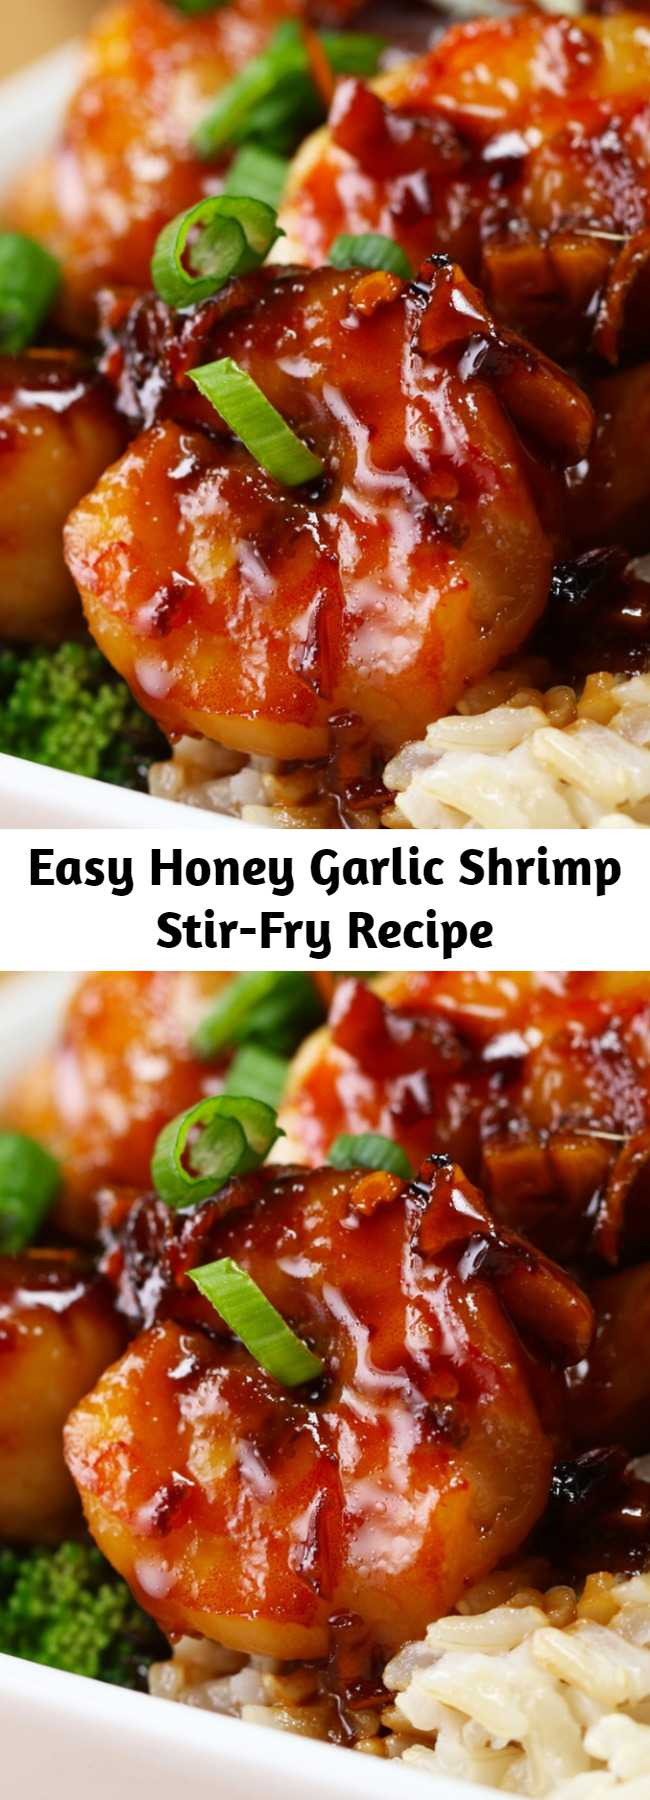 Easy Honey Garlic Shrimp Stir-Fry Recipe - Easy and delicious. This was like take-out but better!